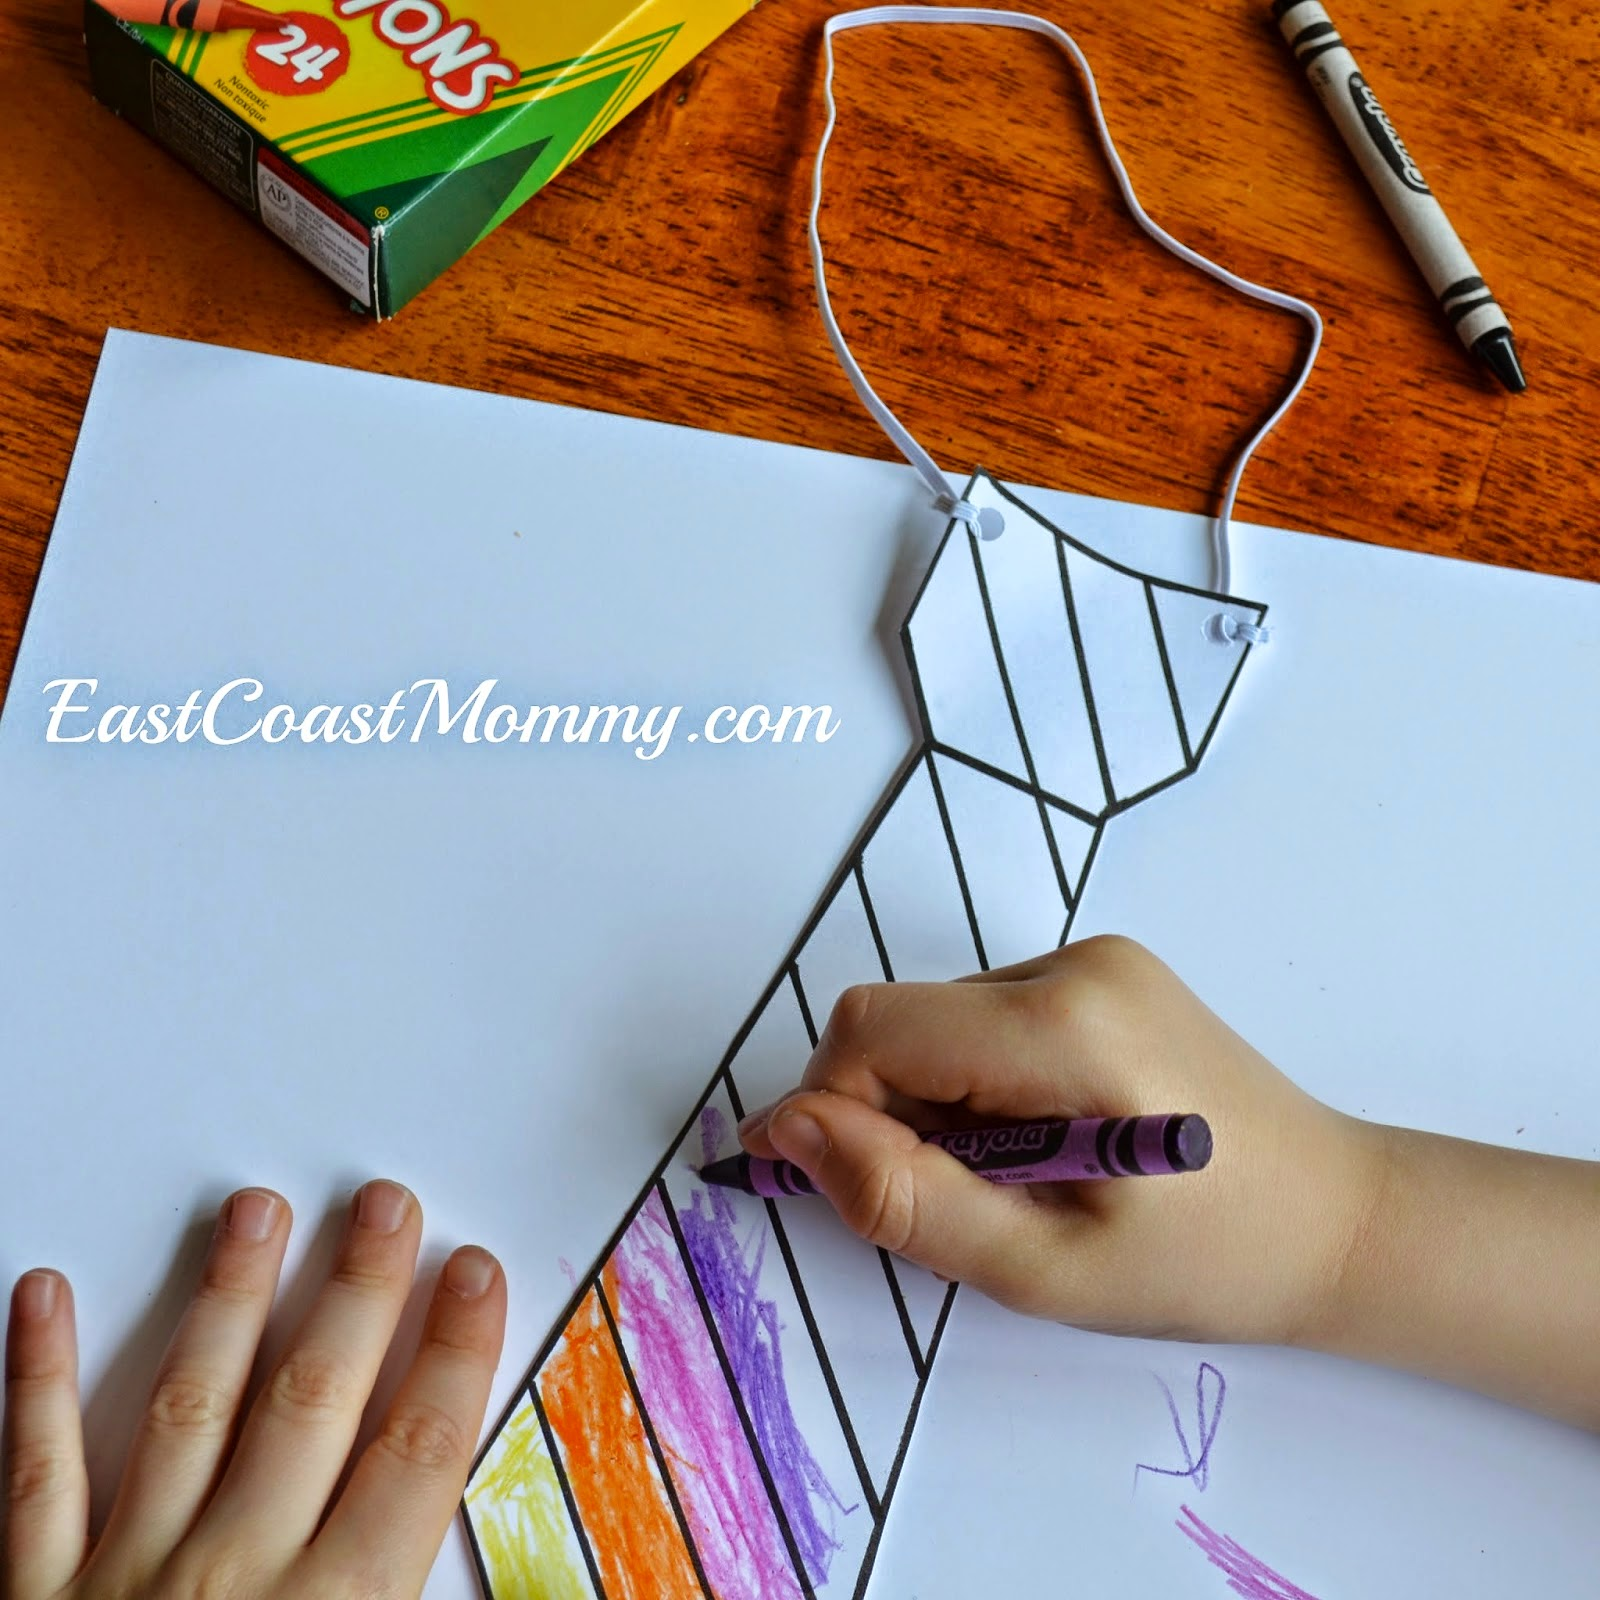 East Coast Mommy 6 Fathers Day Gifts Kids Can Make